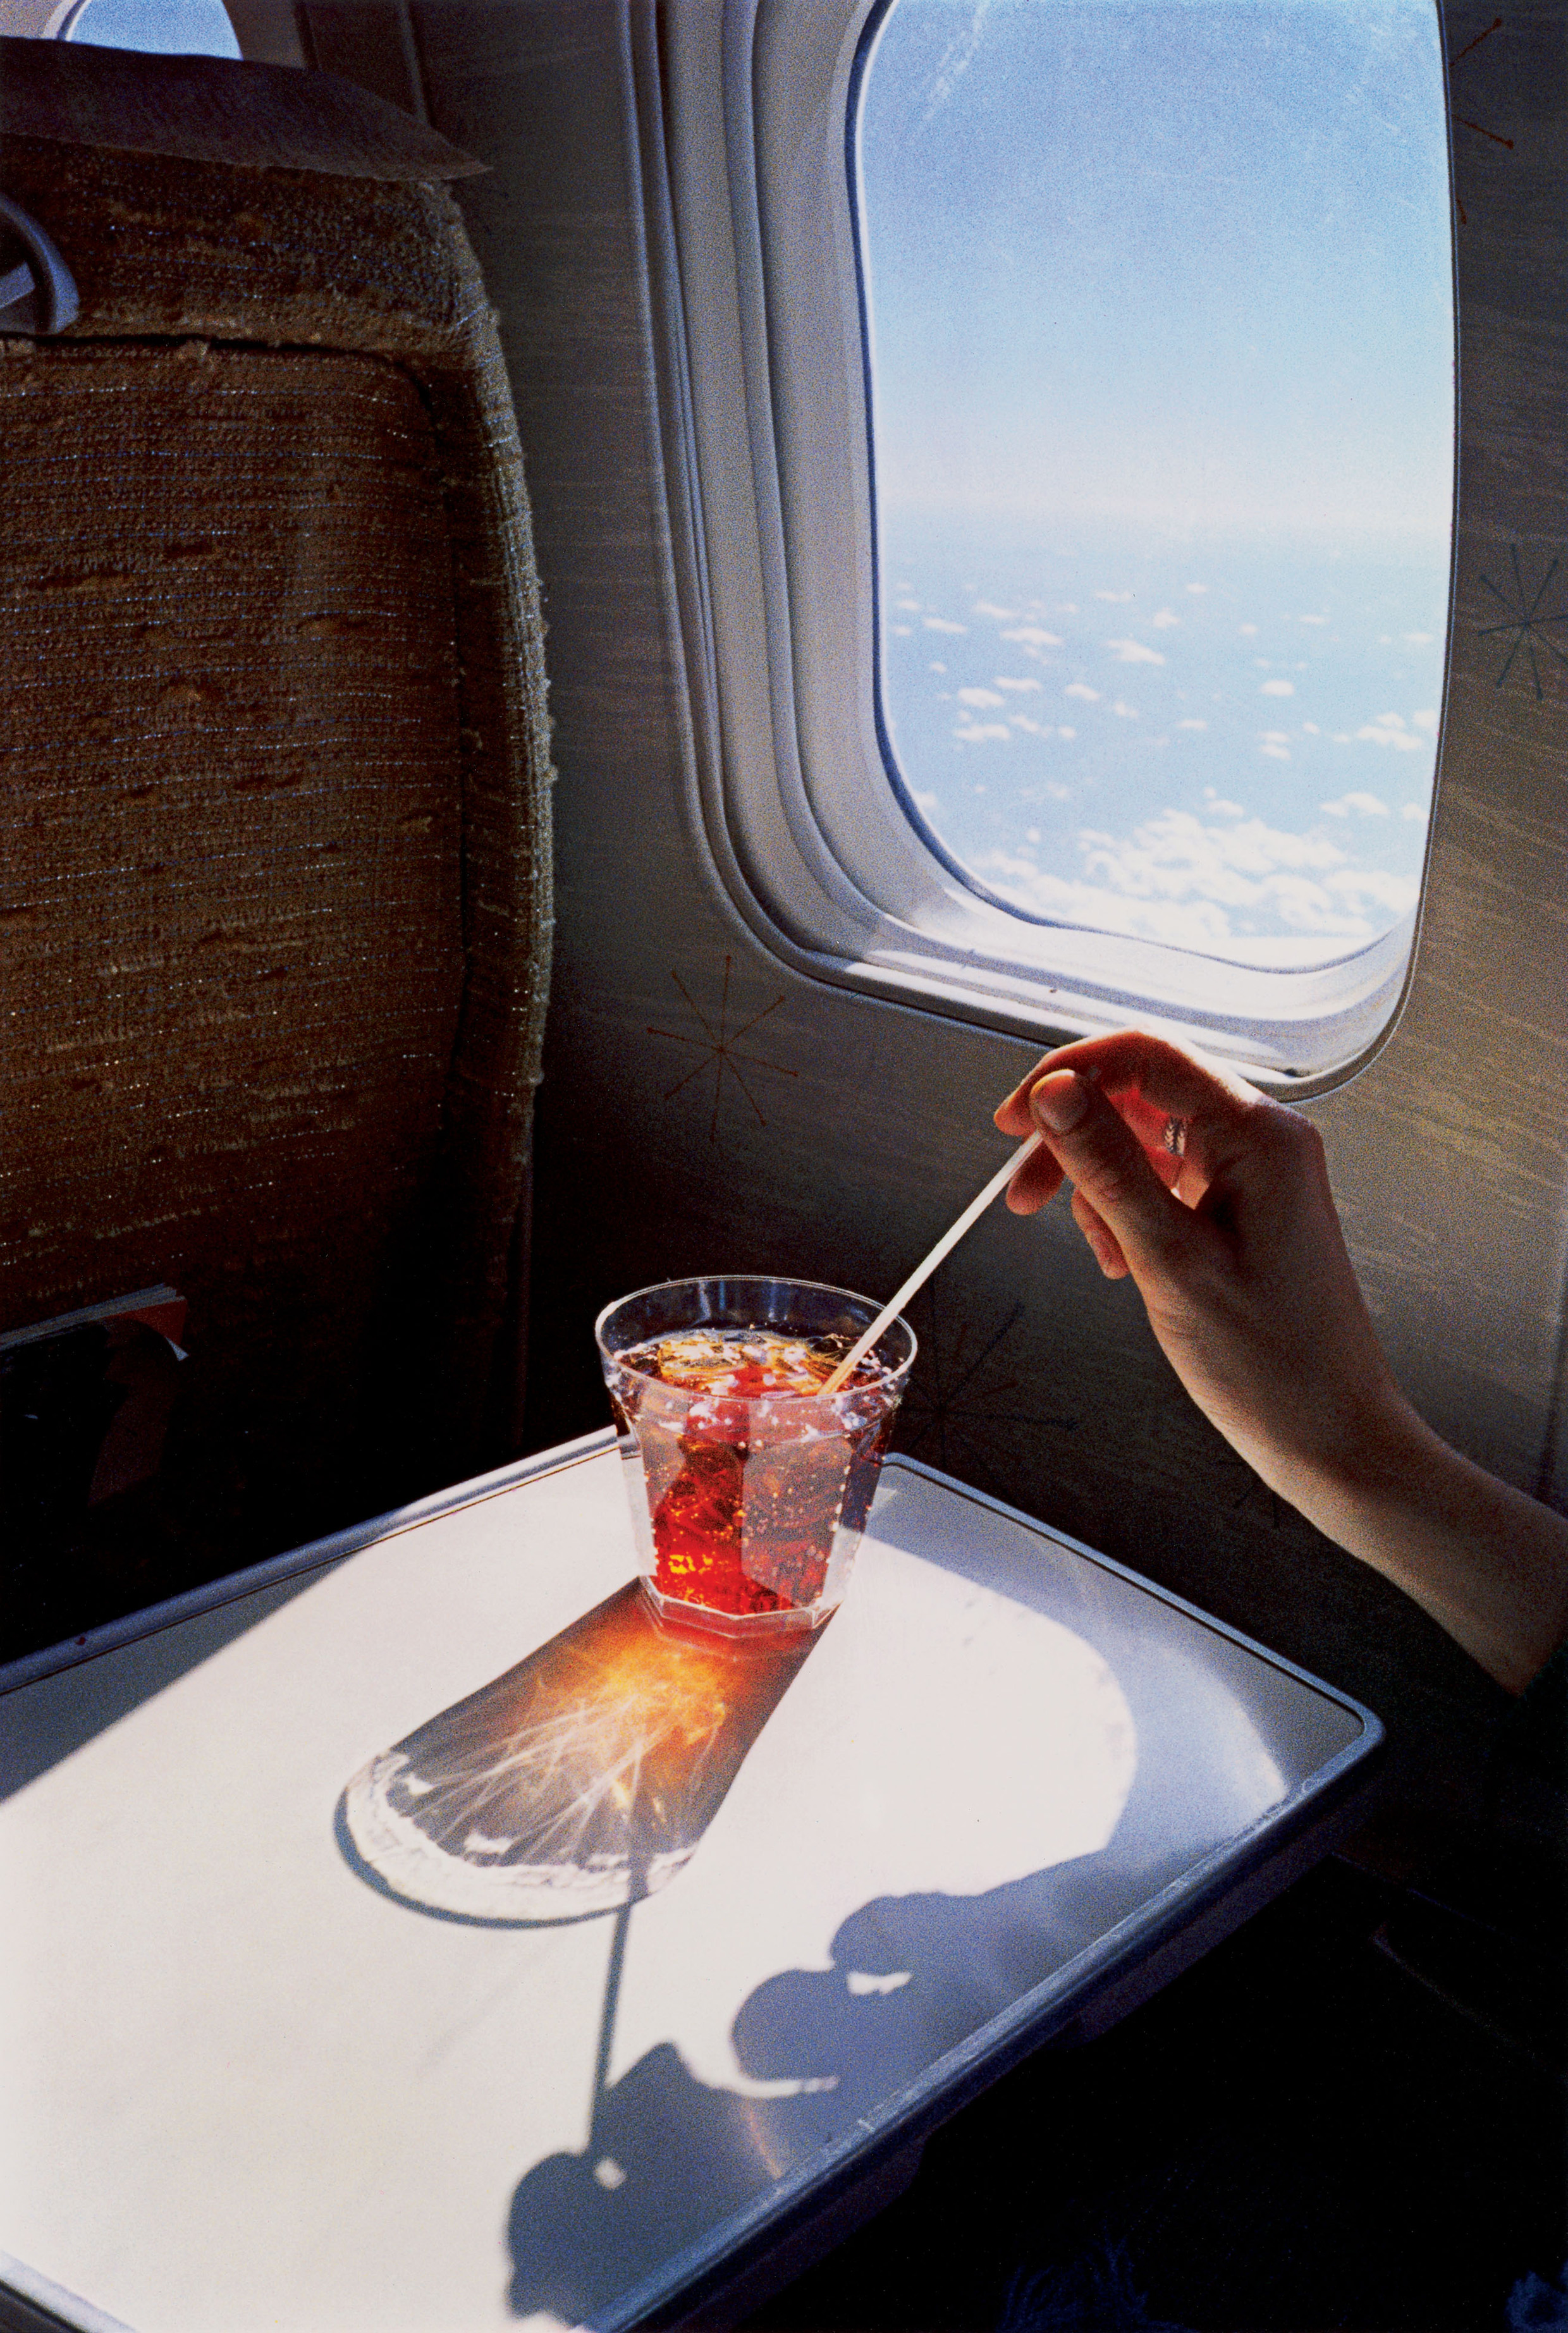 William Eggleston, En Route to New Orleans, 1971–1974, from the series Los Alamos, 1965–1974 © Eggleston Artistic Trust 2004 / Courtesy David Zwirner, New York/London